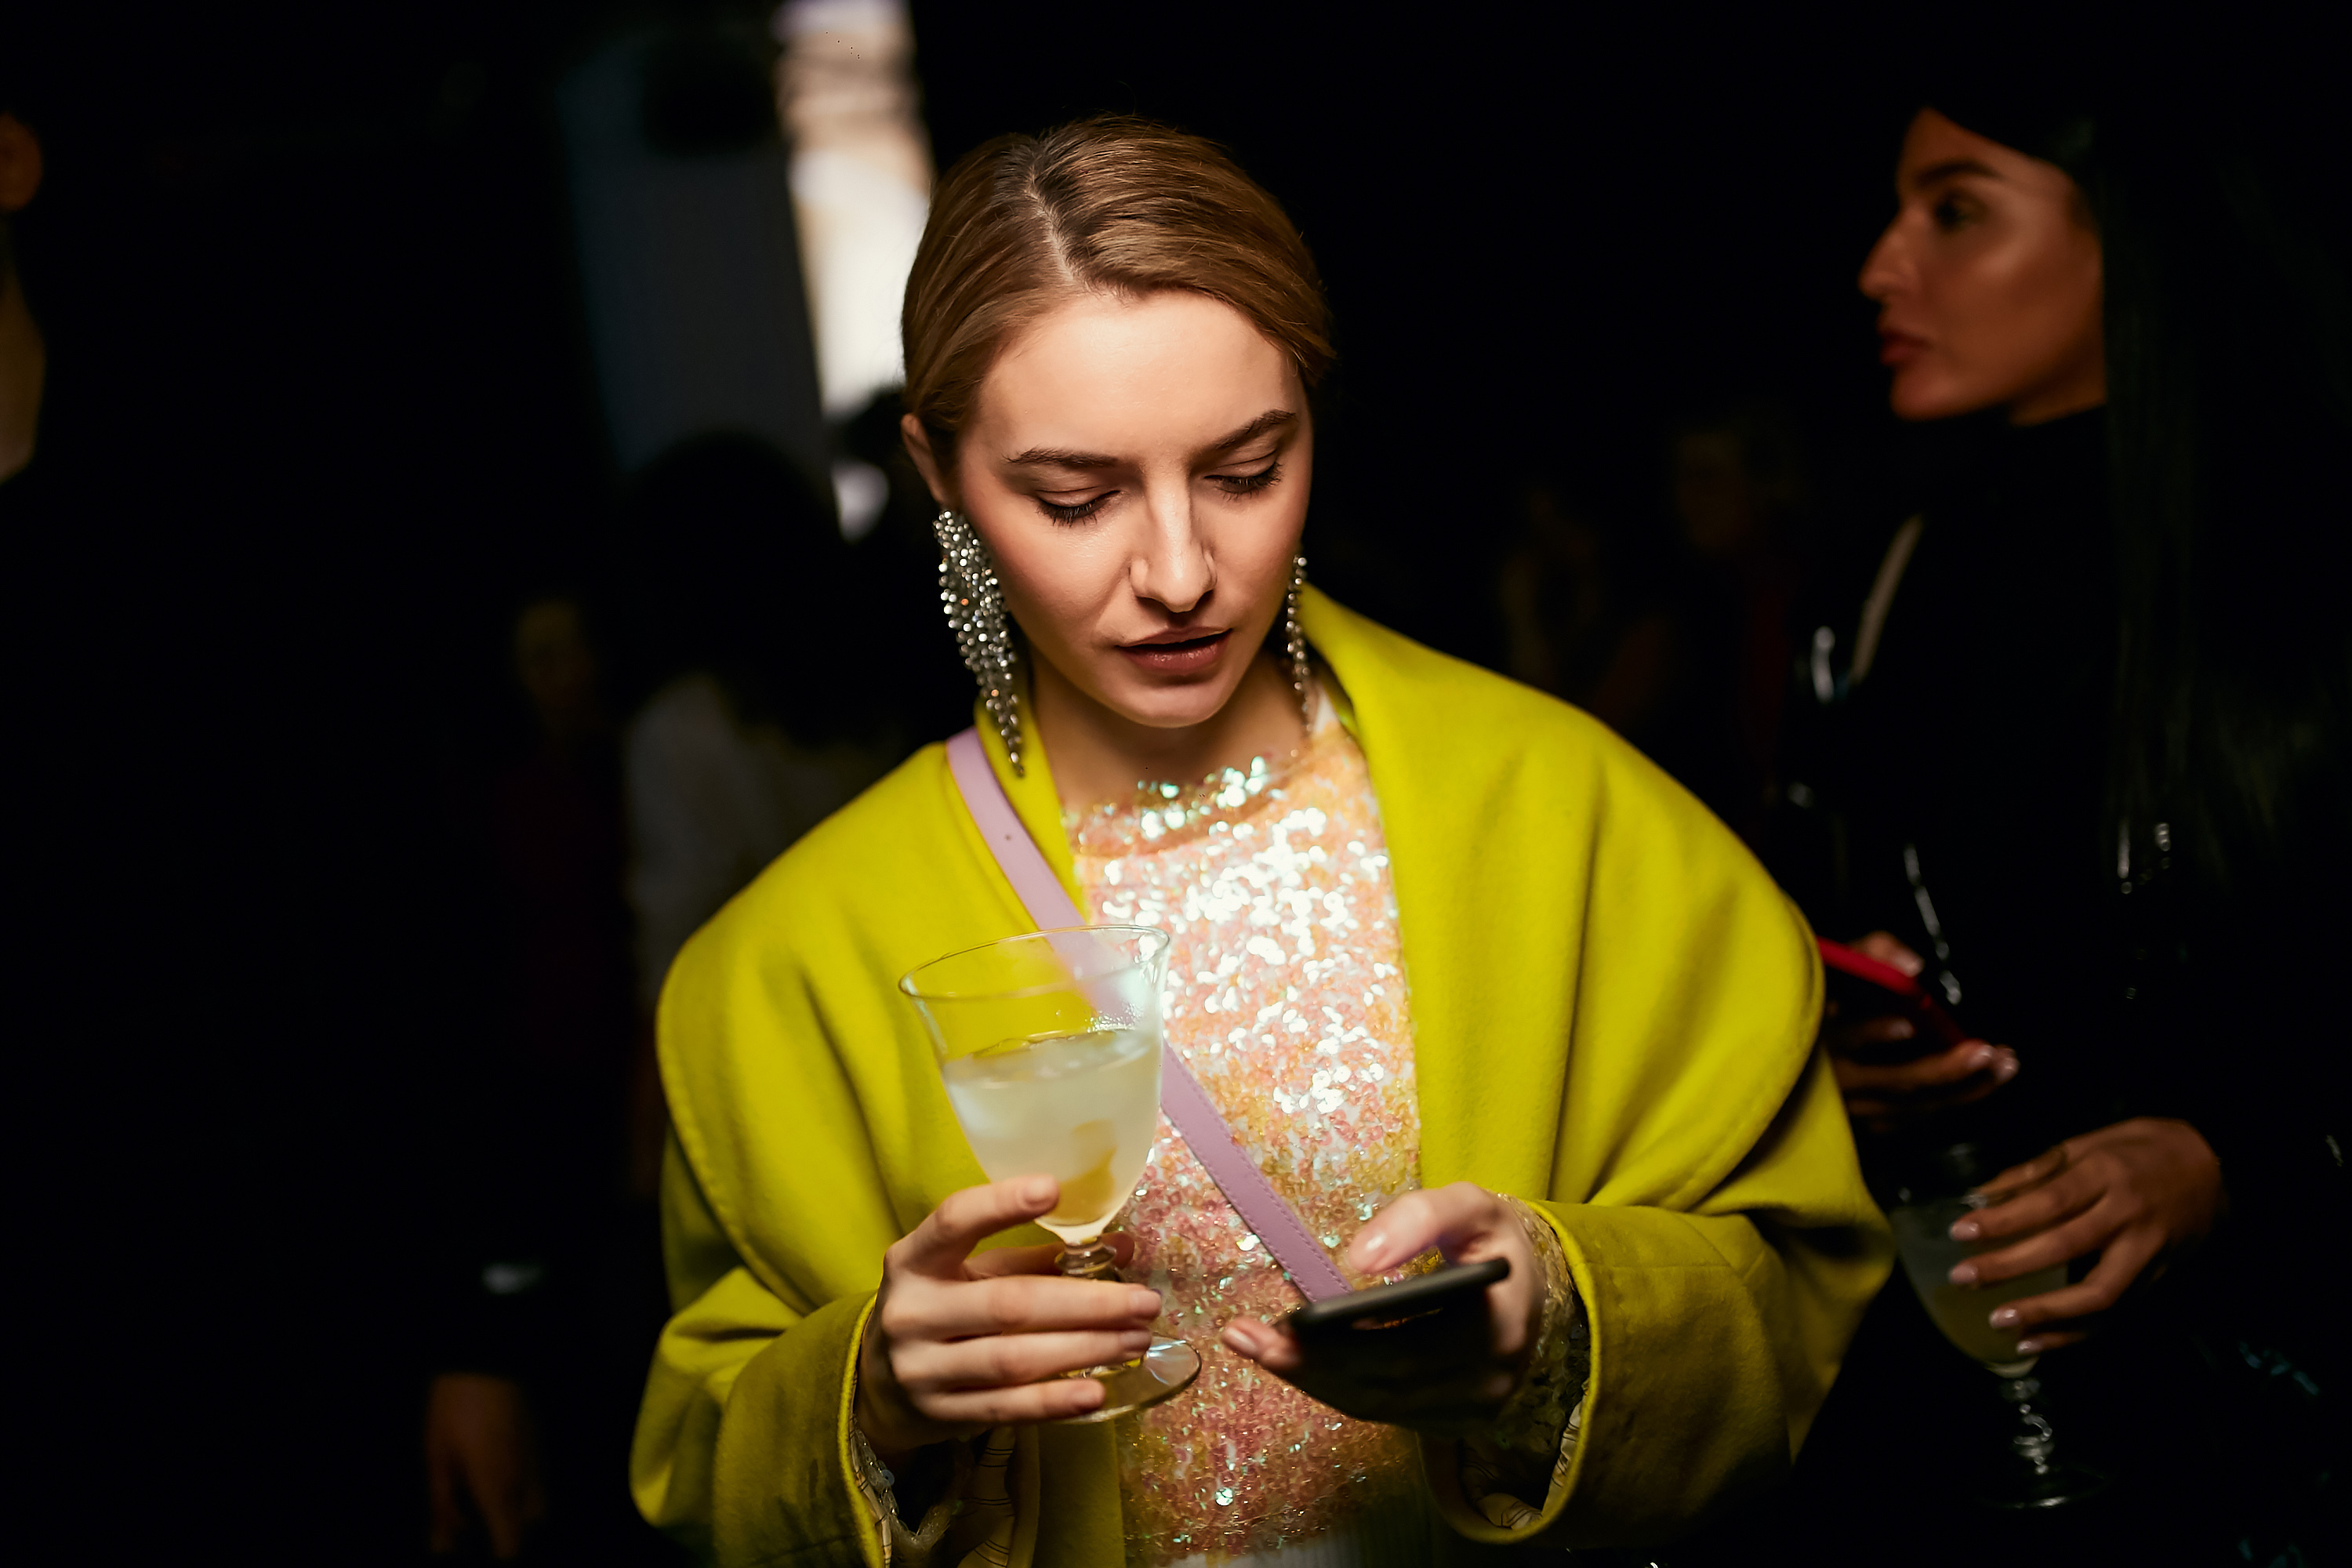 Valery_Kovalska_UFW_FW19/20_party